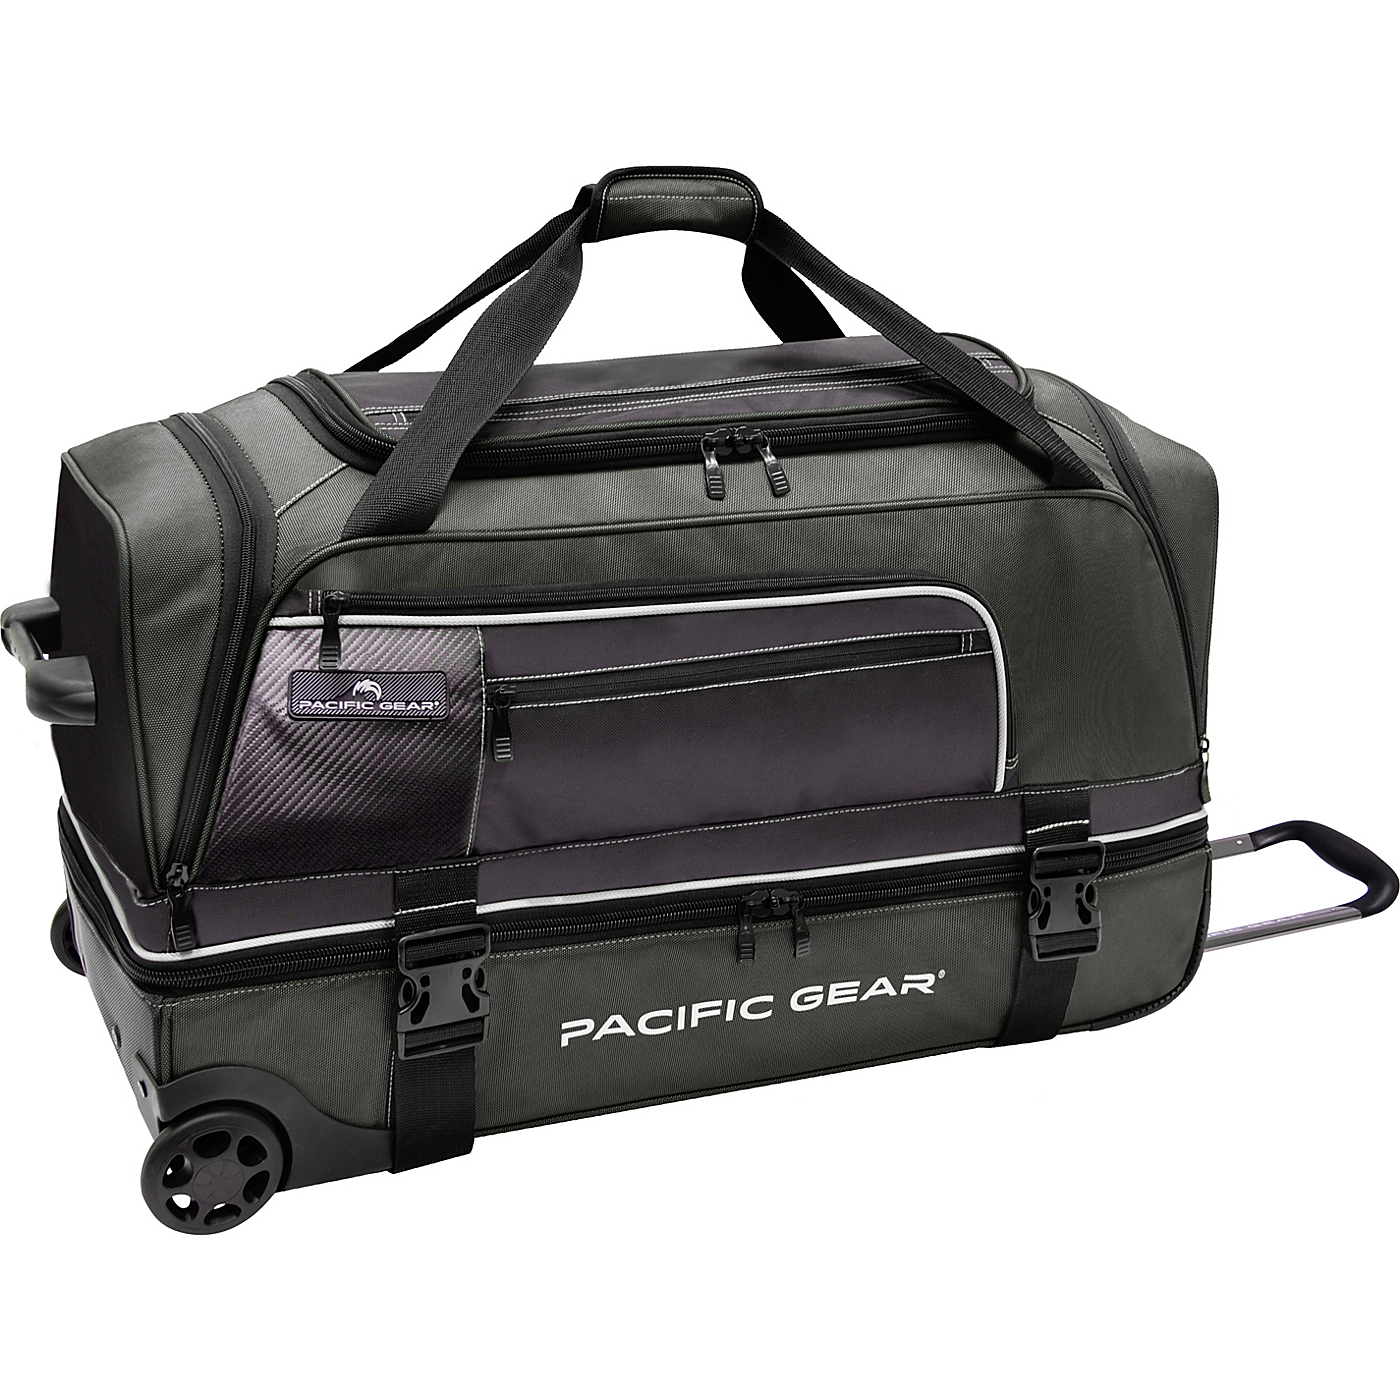 f8186b56fc9c Pacific Gear 30 Drop Bottom Rolling Duffel Bag Green Travele on ...